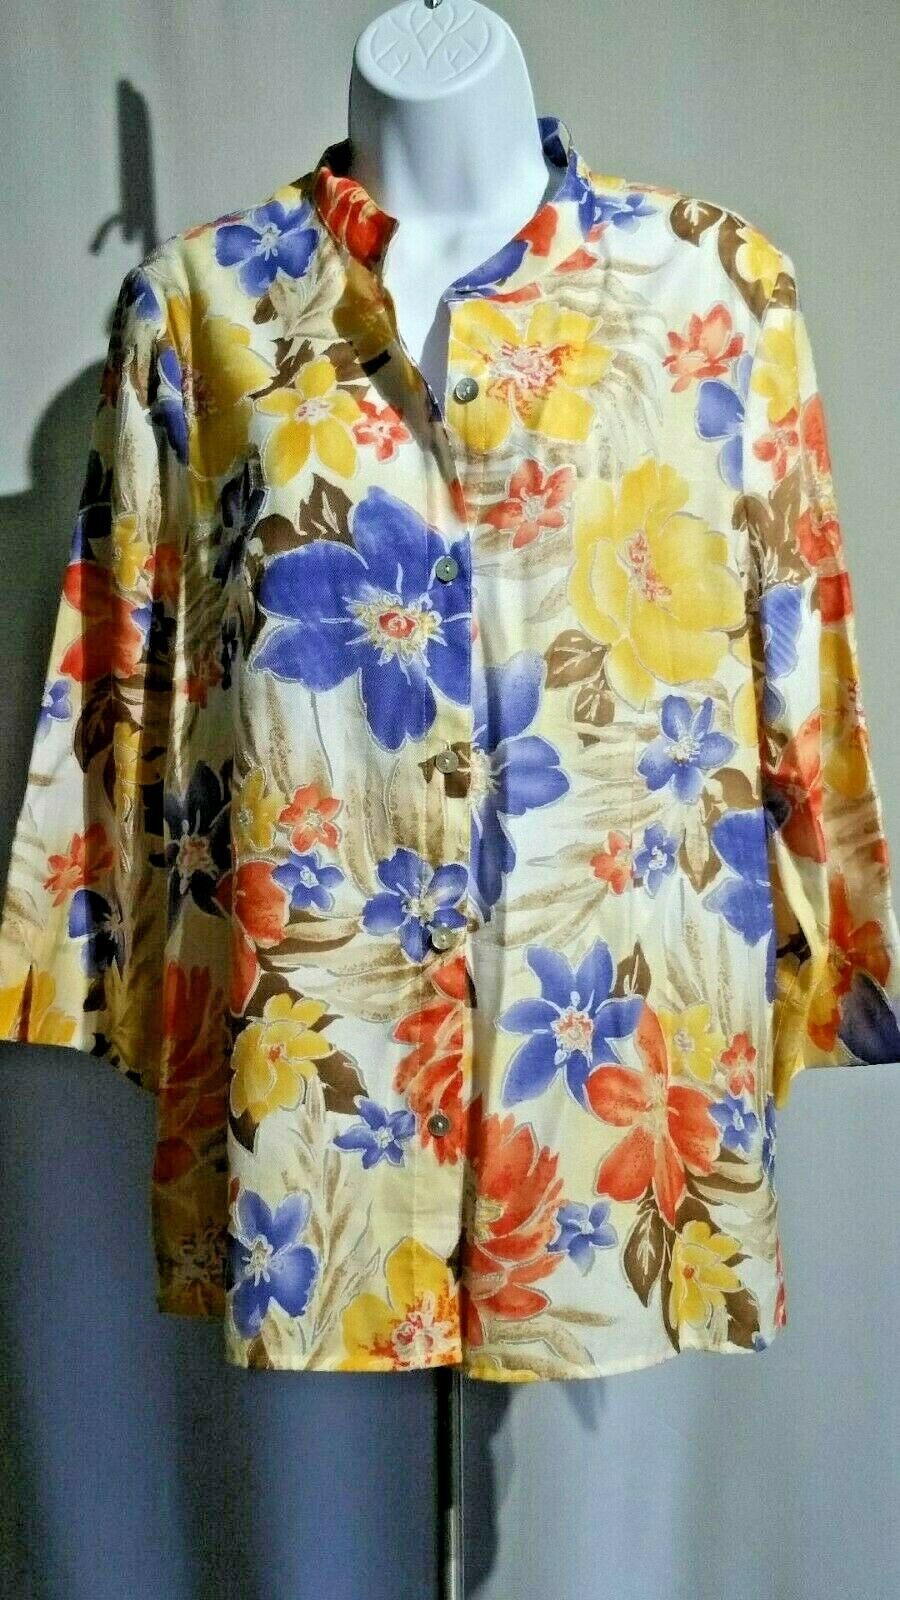 Alfrot Dunner  Floral Print Blouse Shirt Top MulticolGoldt   Sz 12   Pre-Owned